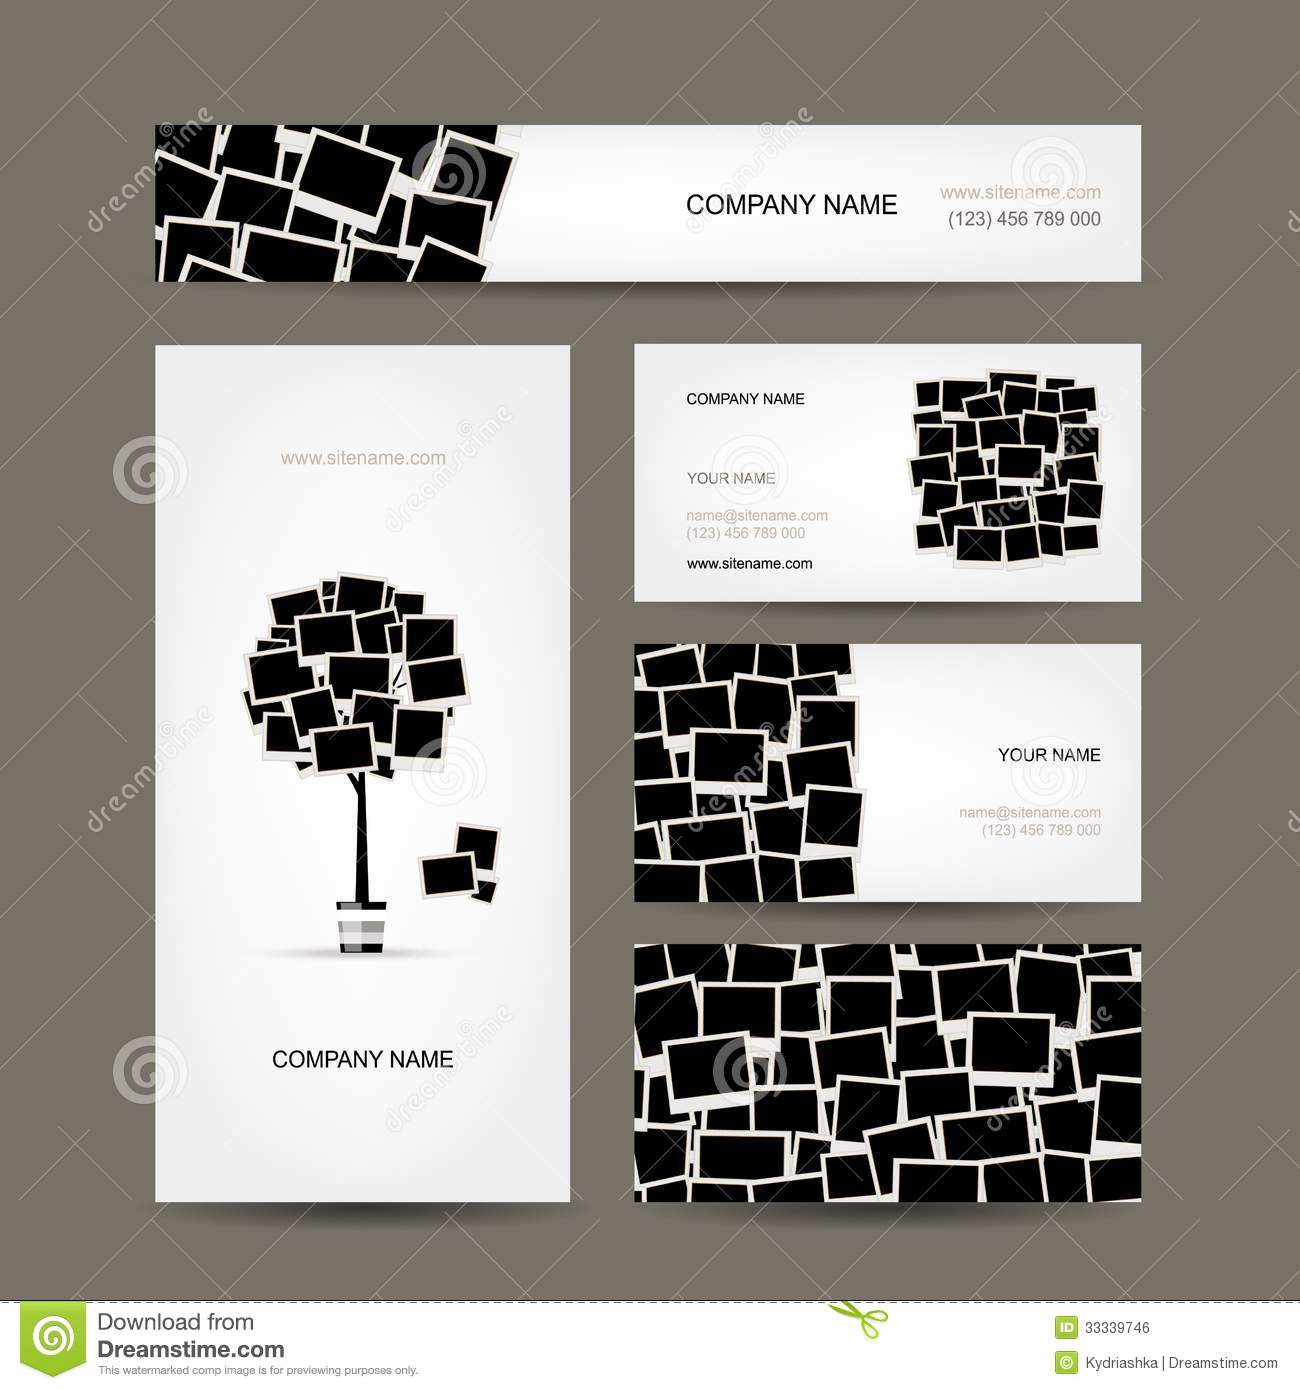 Business cards design photo frames stock vector image 33339746 business cards design photo frames magicingreecefo Gallery